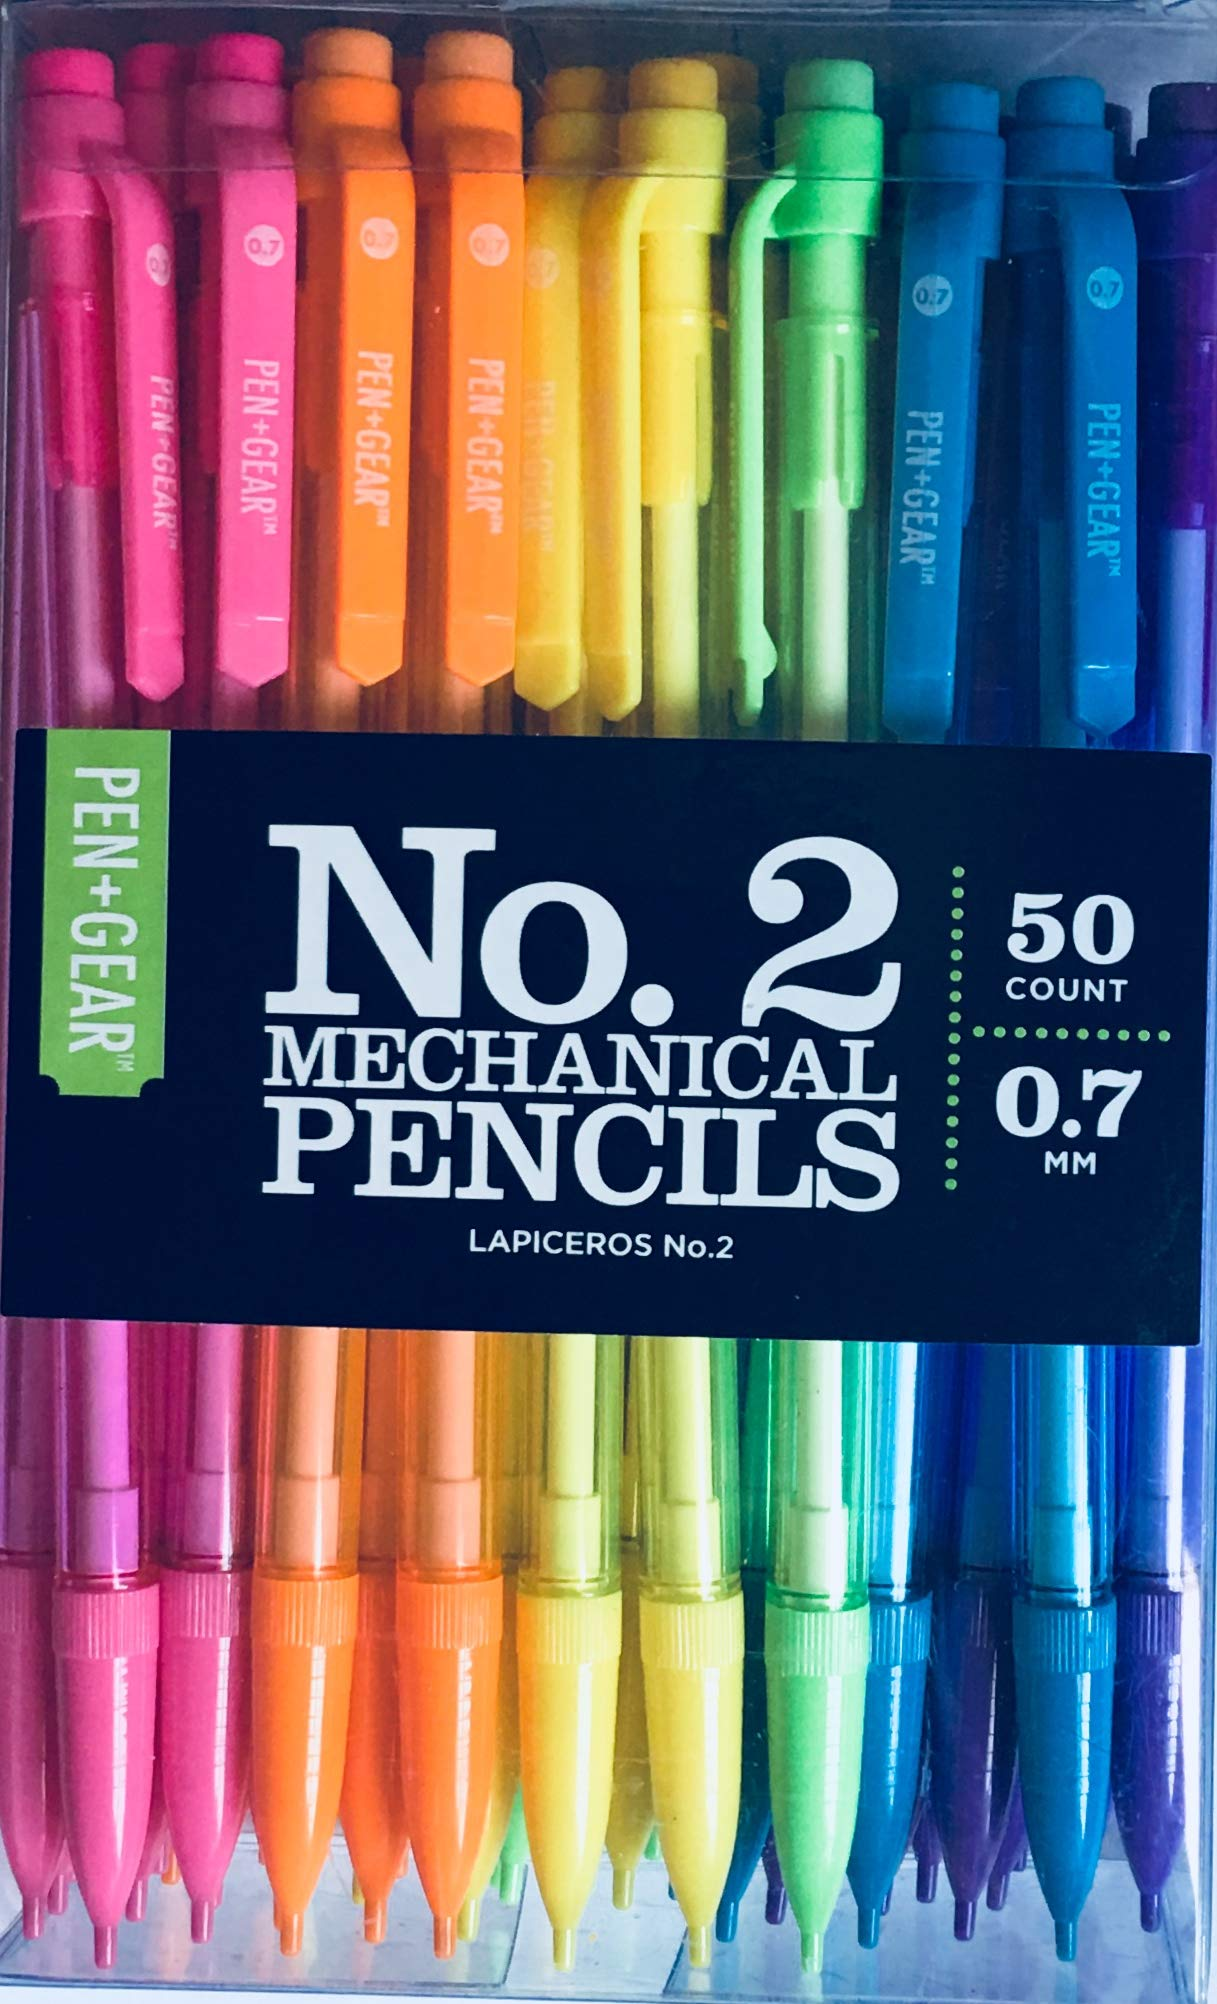 No. 2 Mechanical Pencils (Bright Multicolored, 3 Leads in Each) [50 Count] (50)